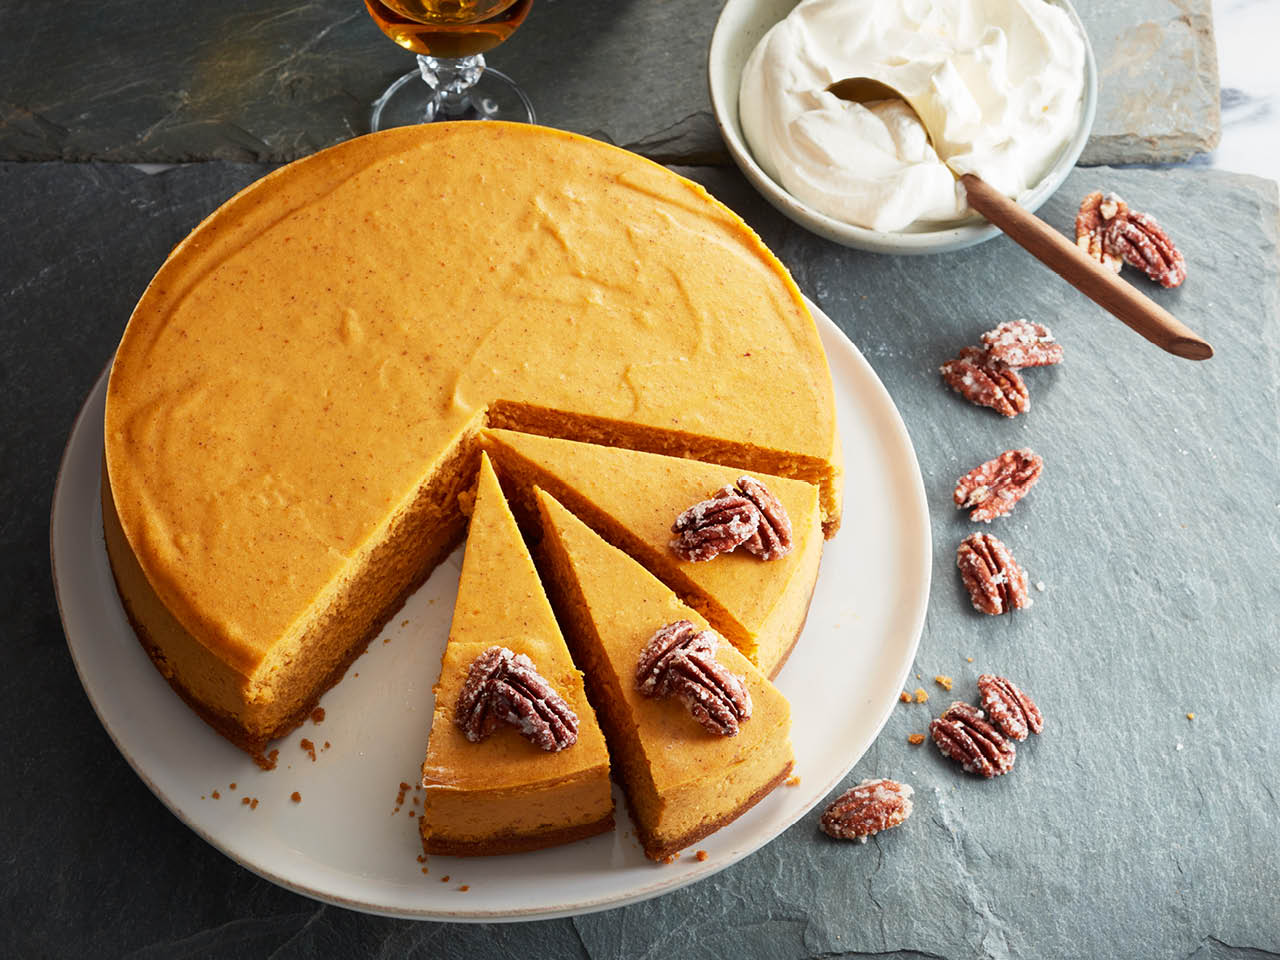 Pumpkin desserts for thanksgiving: Pumpkin cheesecake